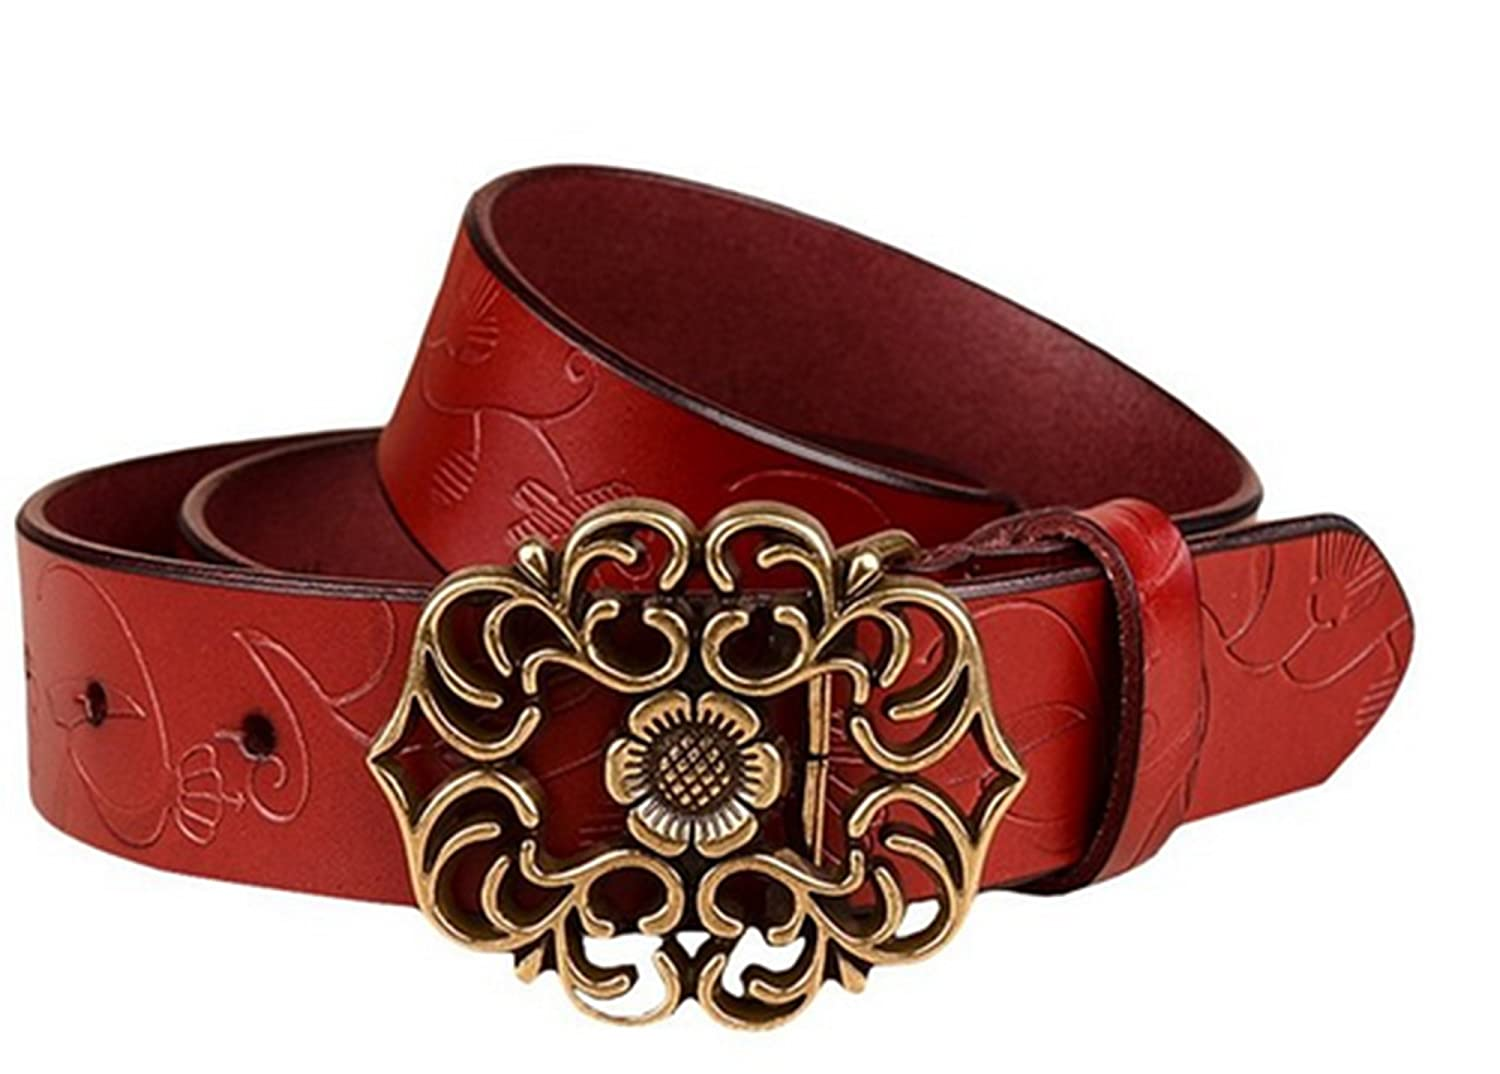 Women's Fashion Vintage Classic Style -Waist Sunflower Design Leather Belts for Women Jeans 3.2CM Width 5Colors (White) WeiE sklkcb001